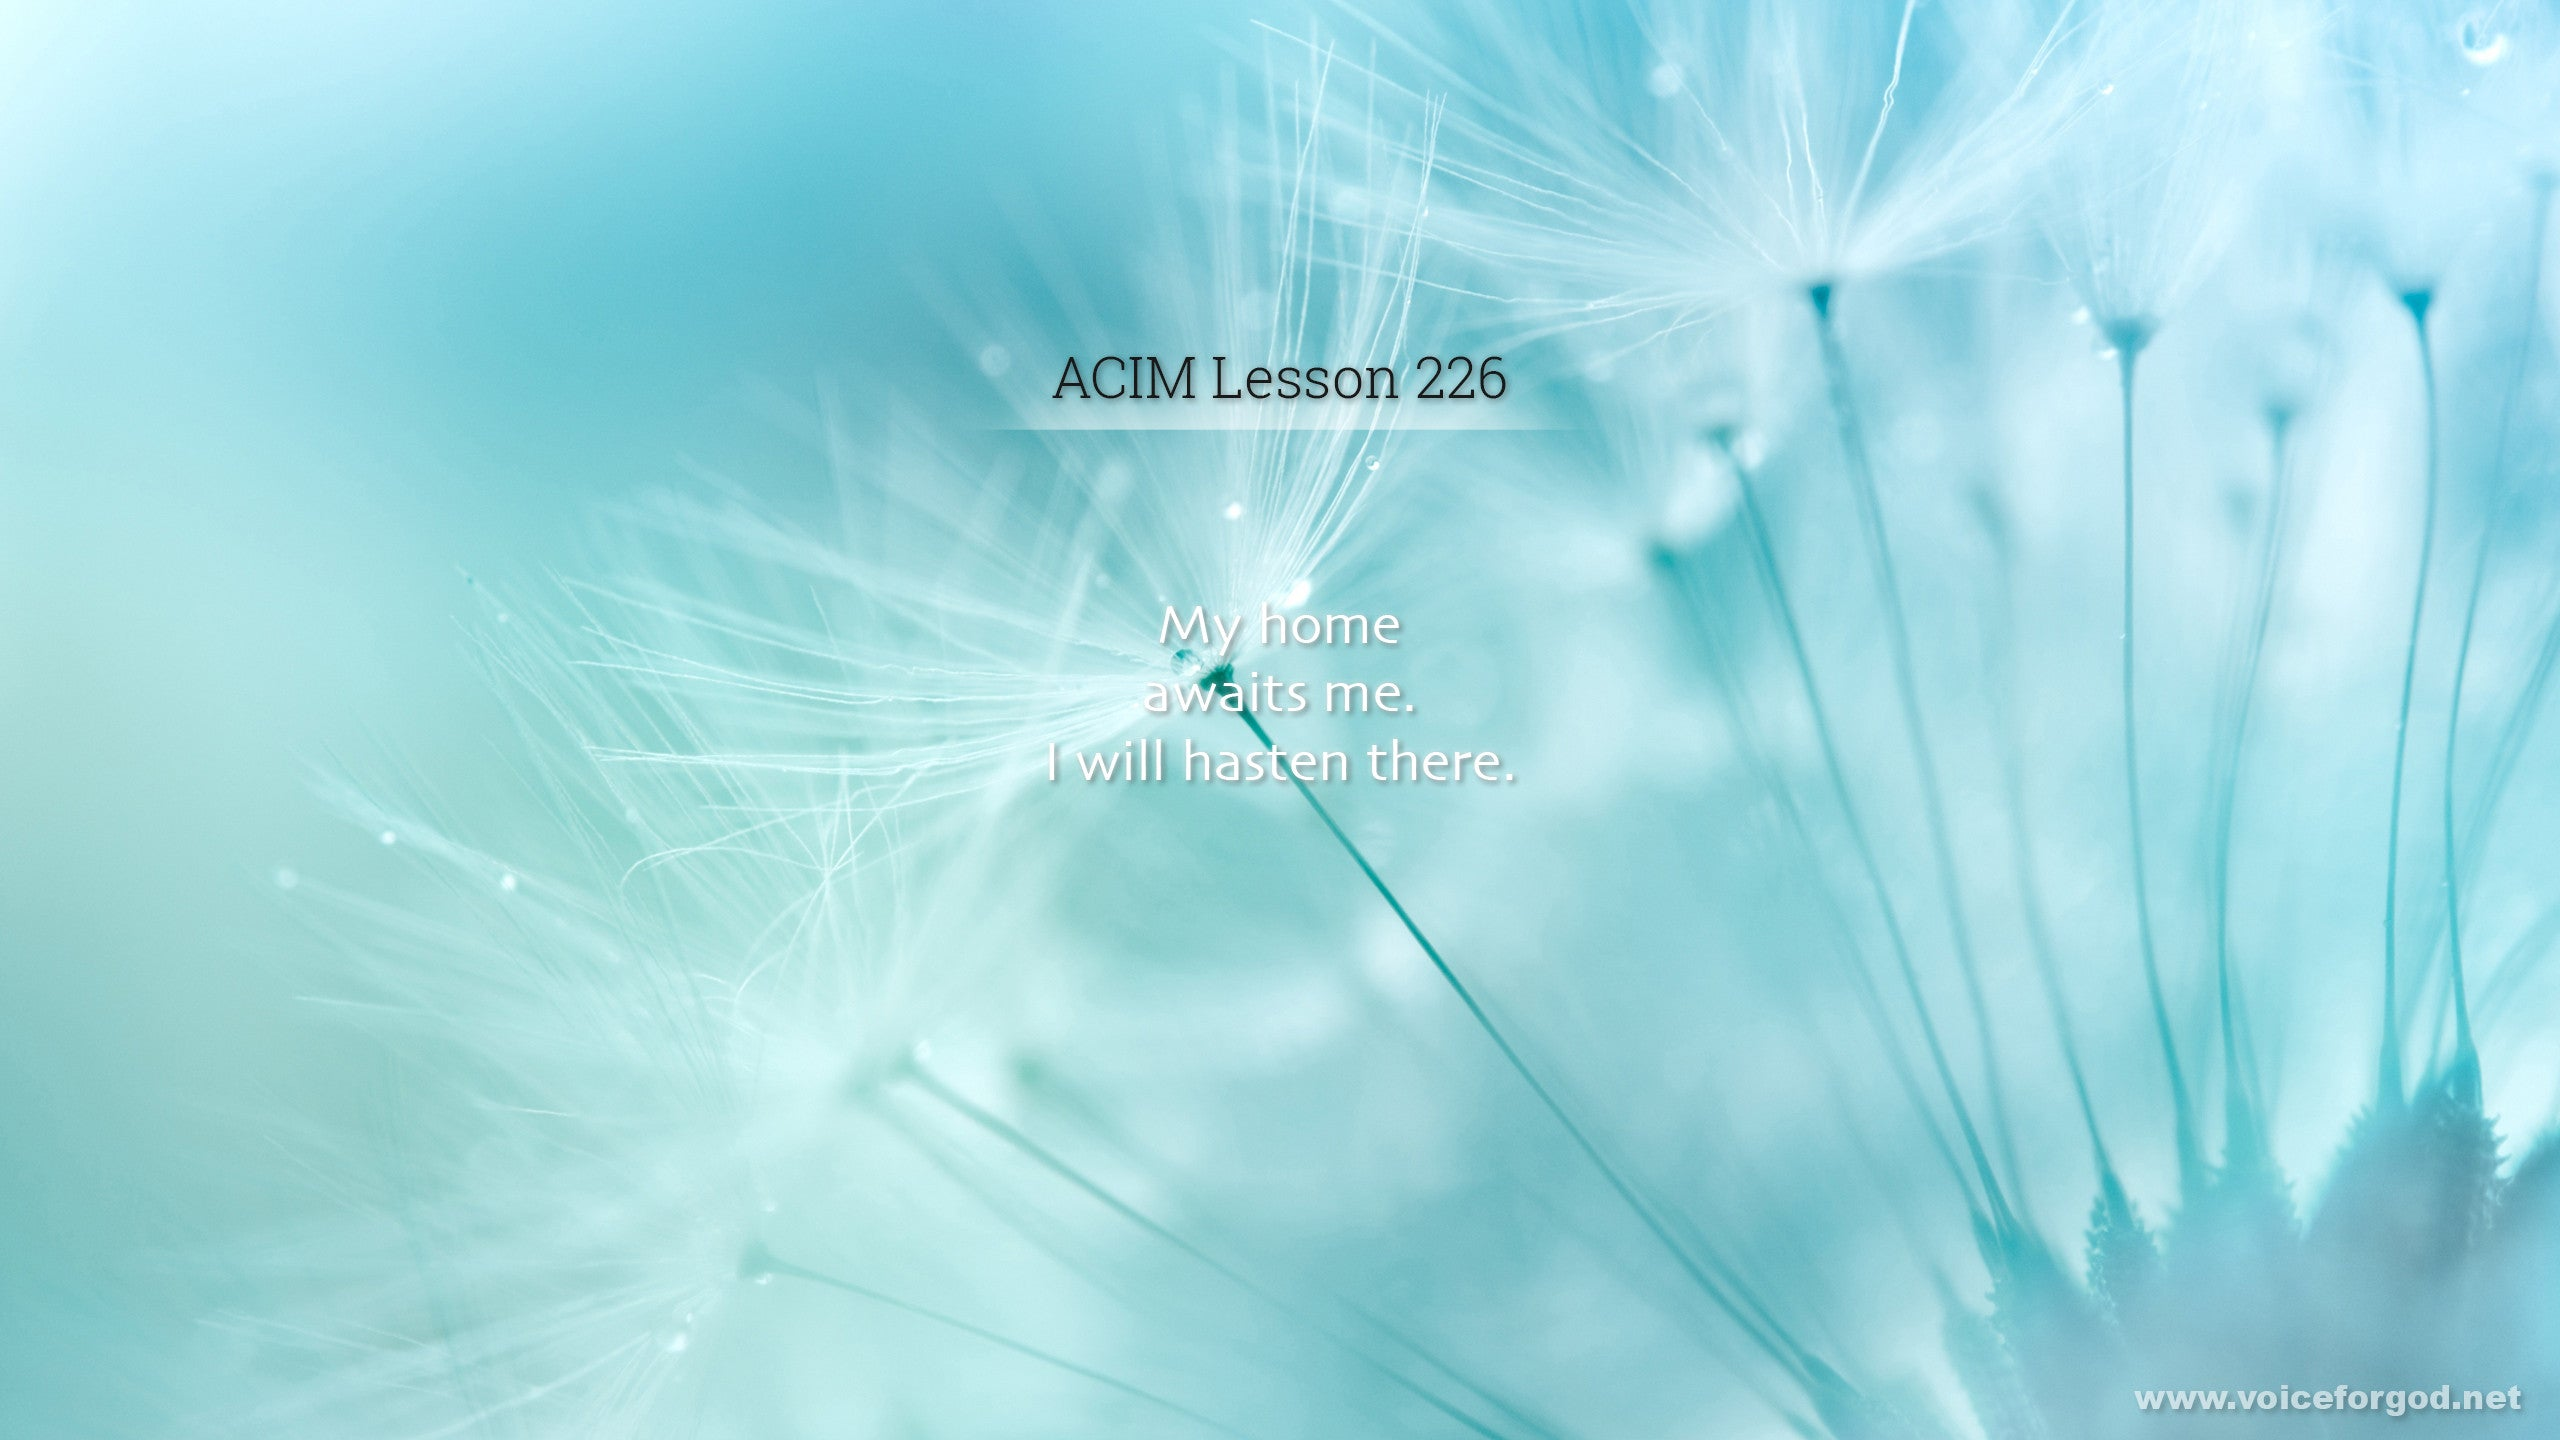 ACIM Lesson 226 - A Course in Miracles Workbook Lesson 226